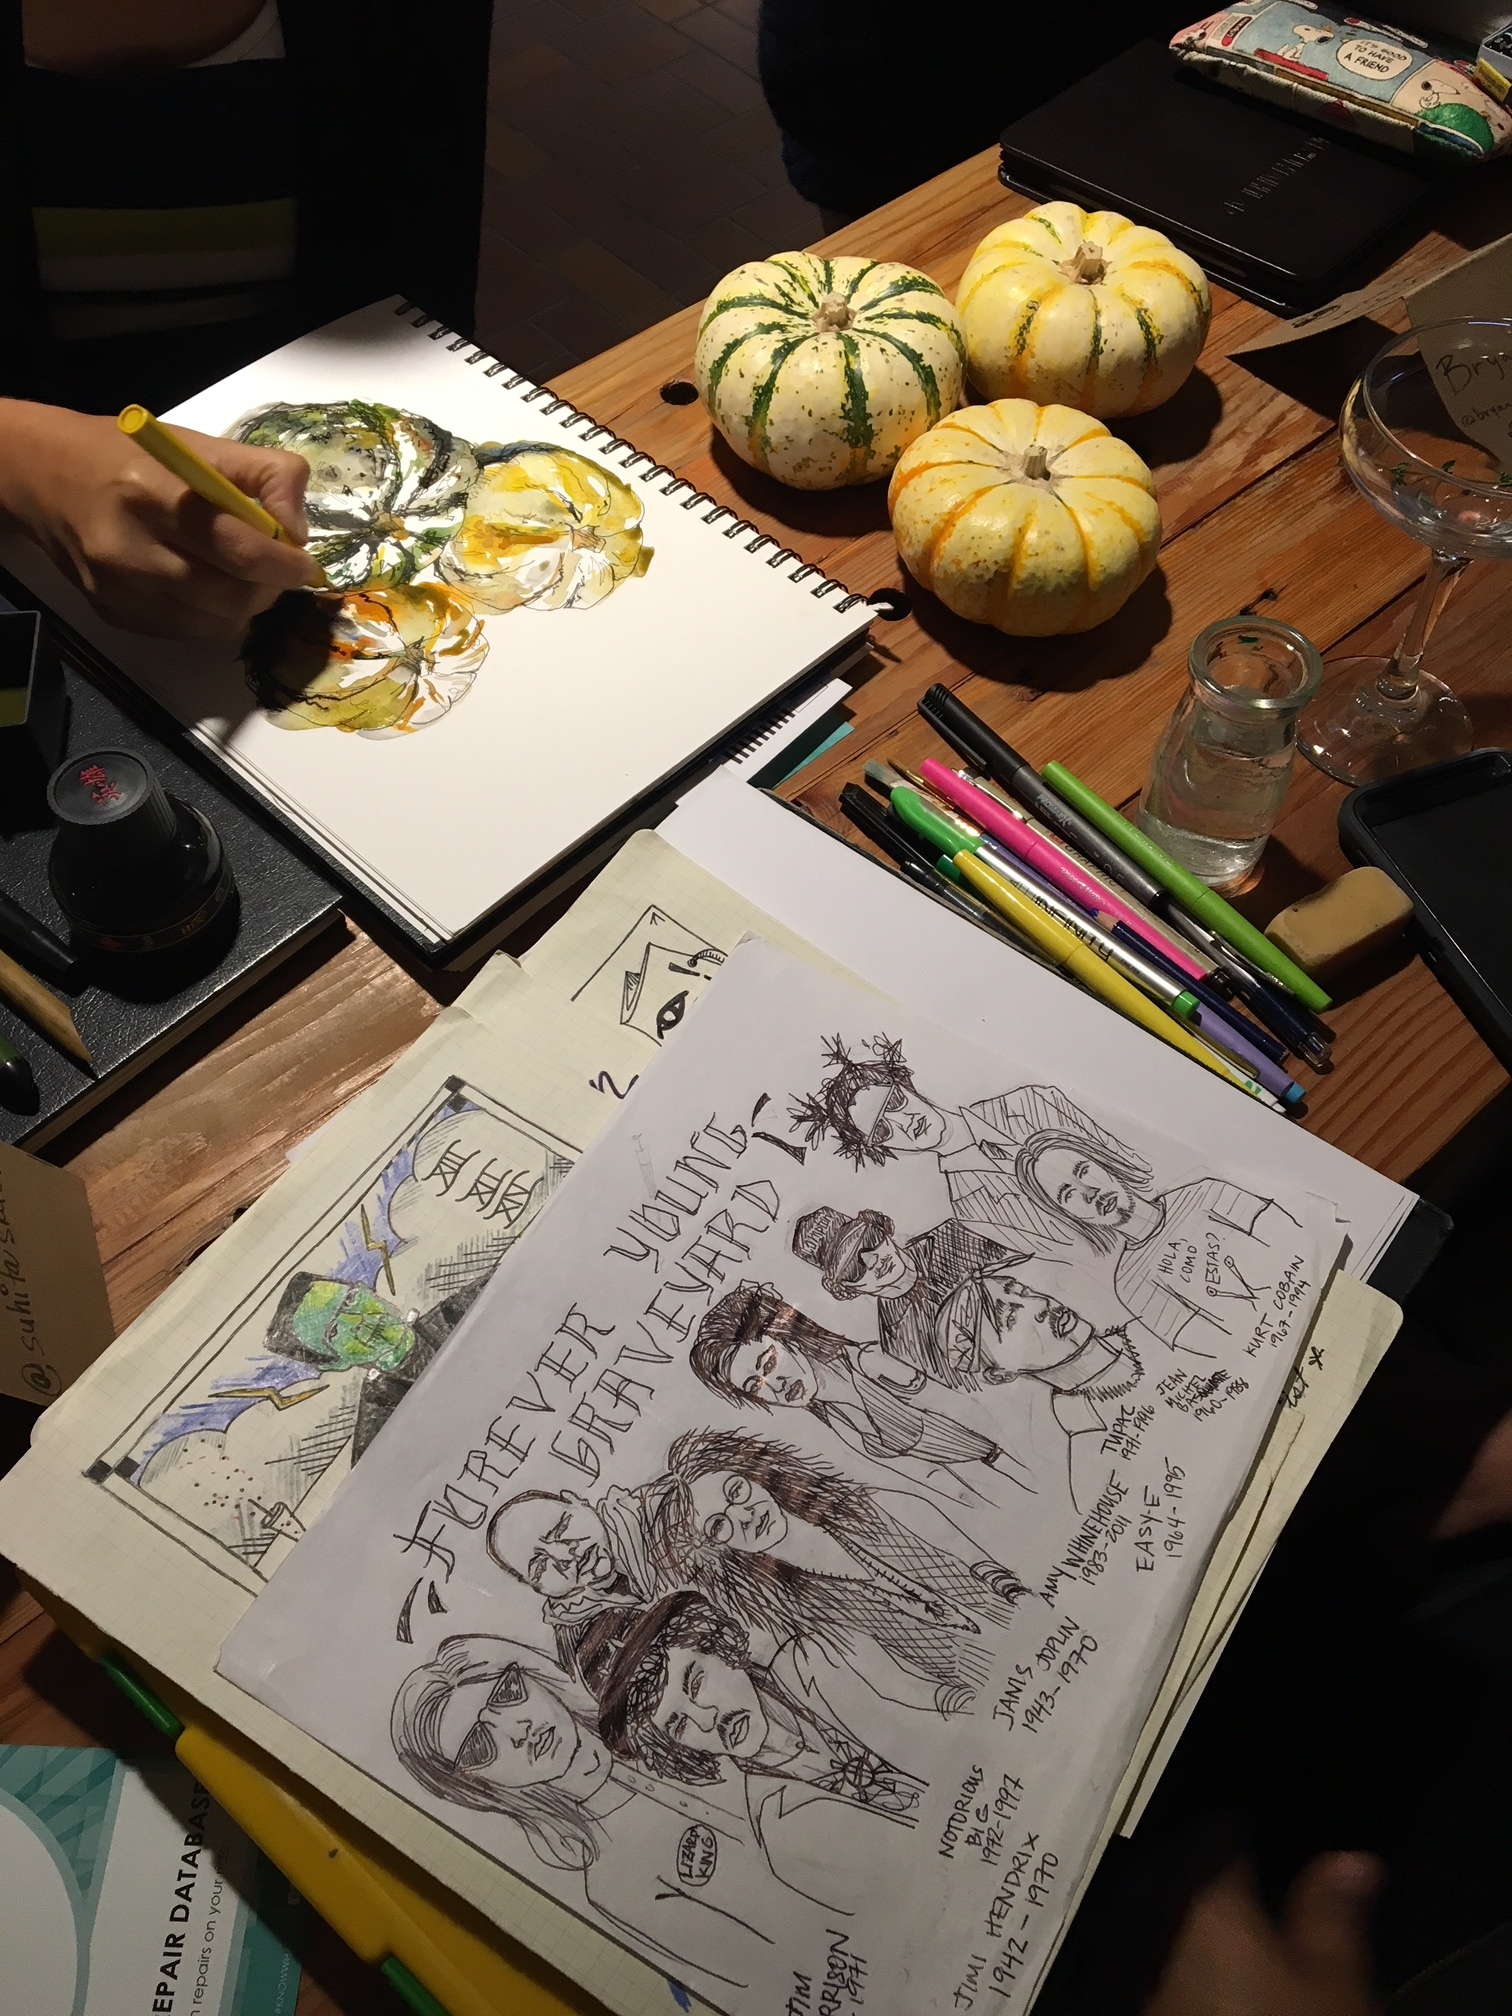 Anabella 's halloween-themed sketches